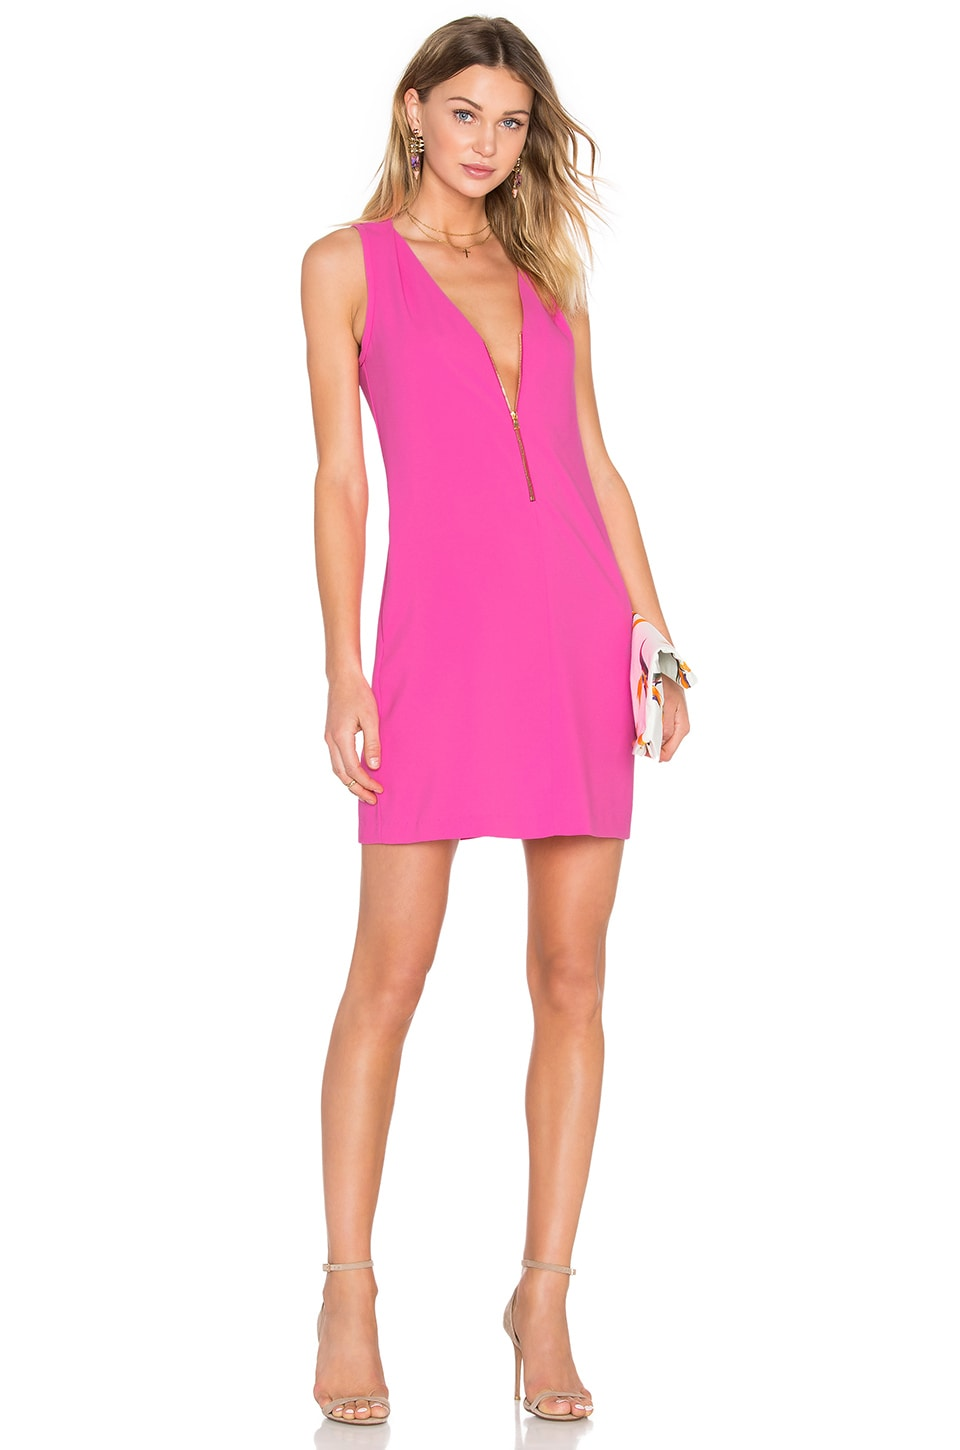 Trina Turk Banning Dress in Flamingo